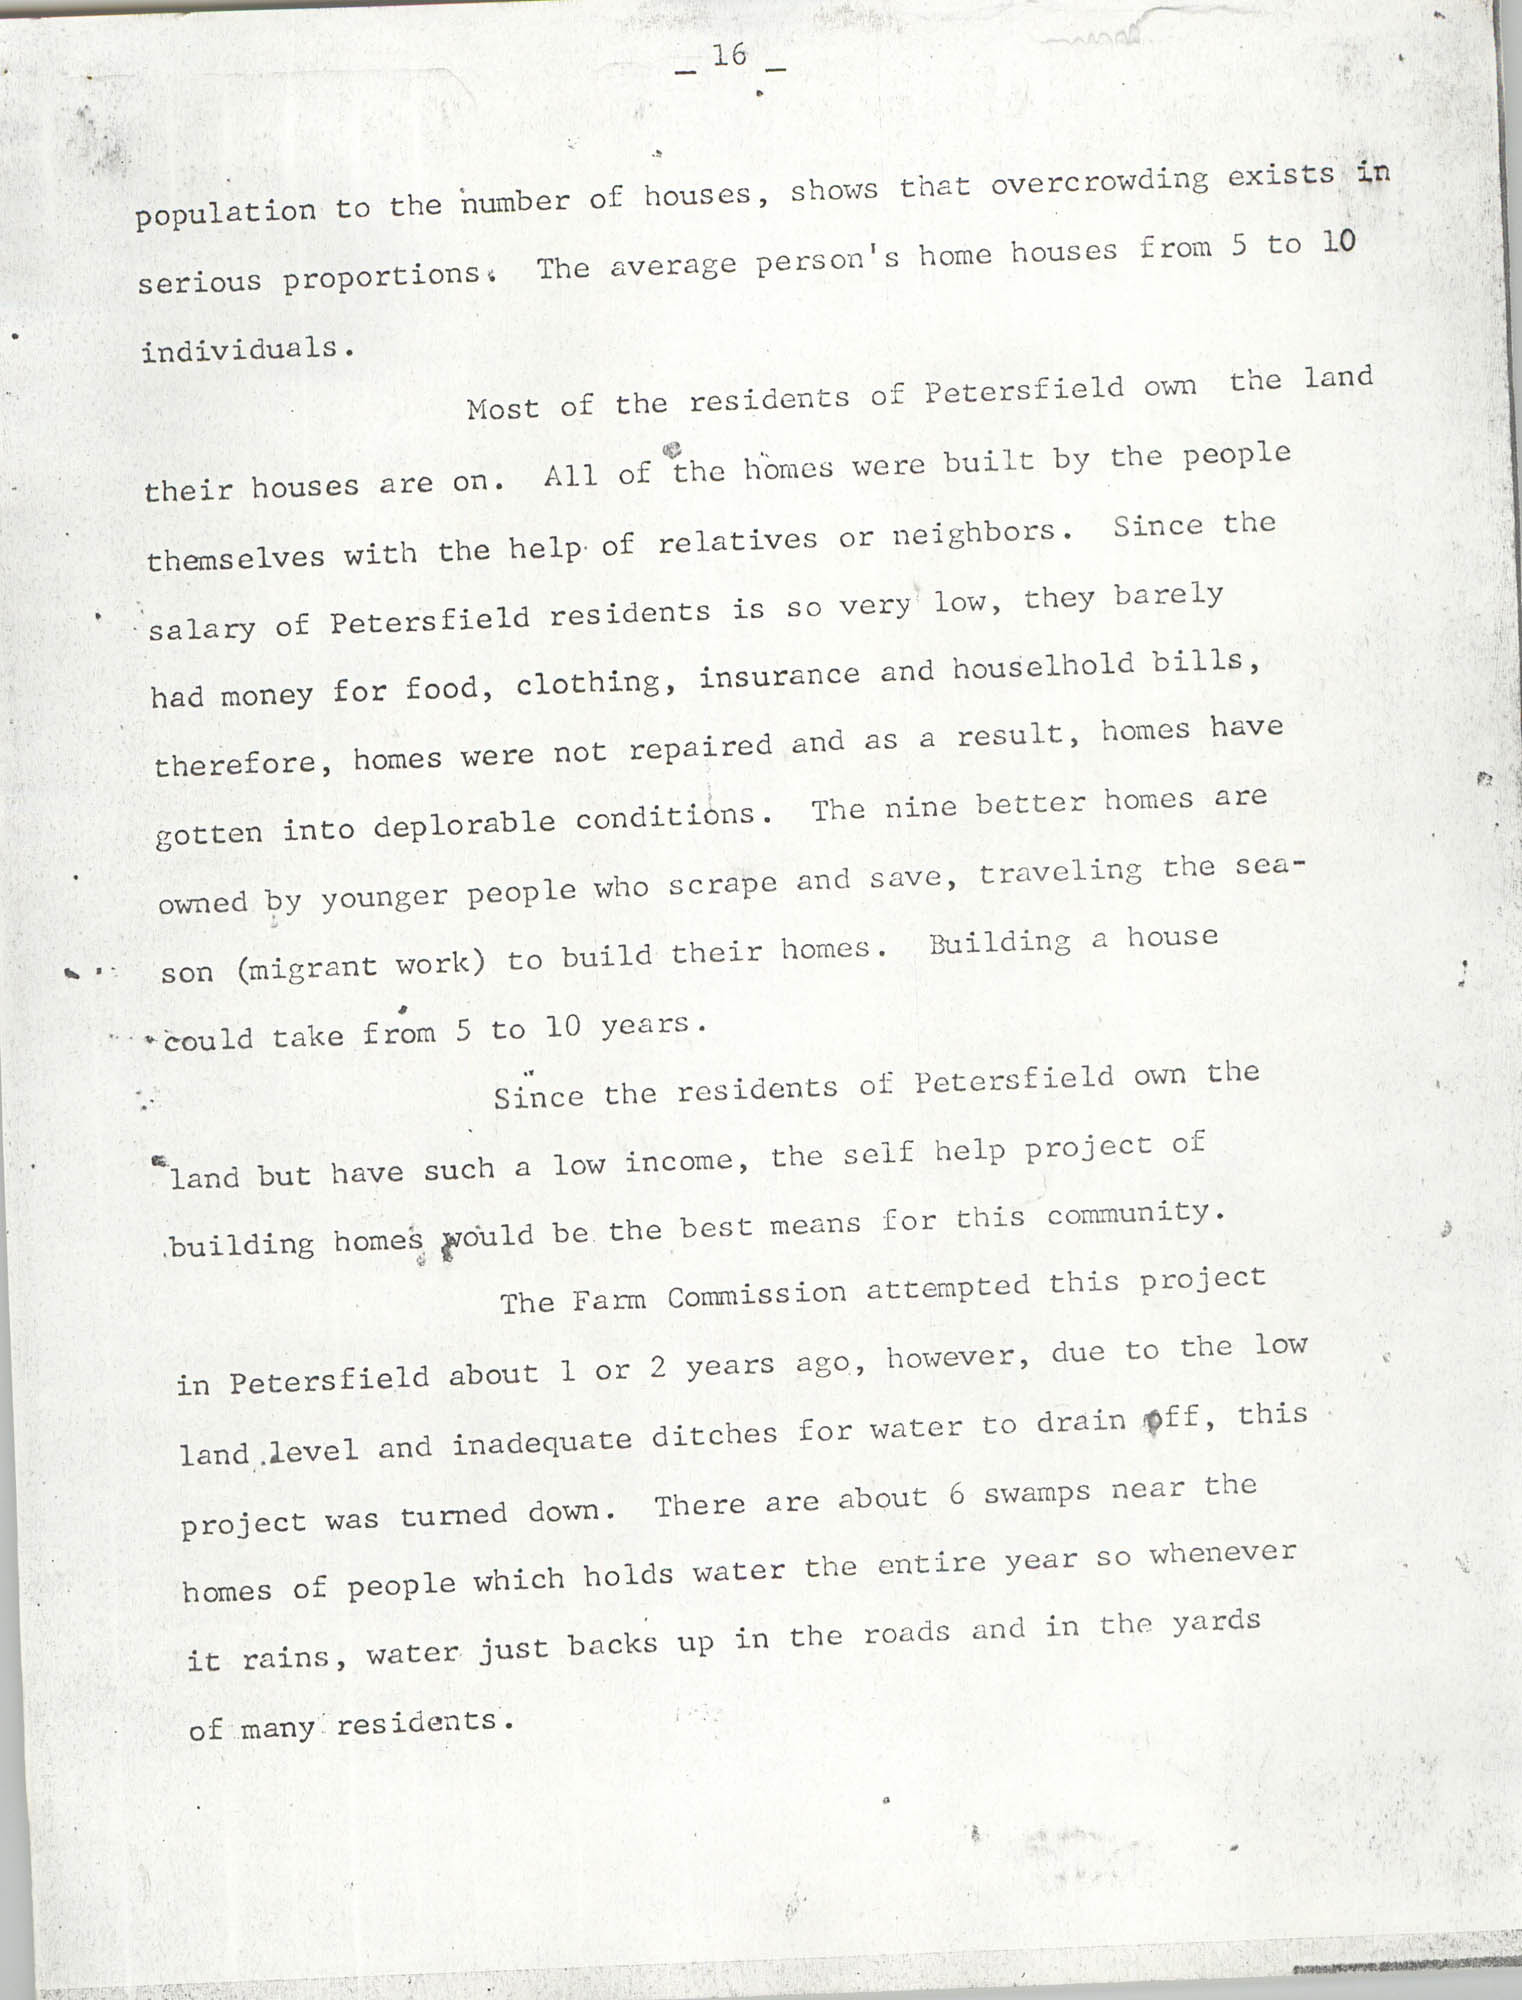 Report on Petersfield, South Carolina, Page 16